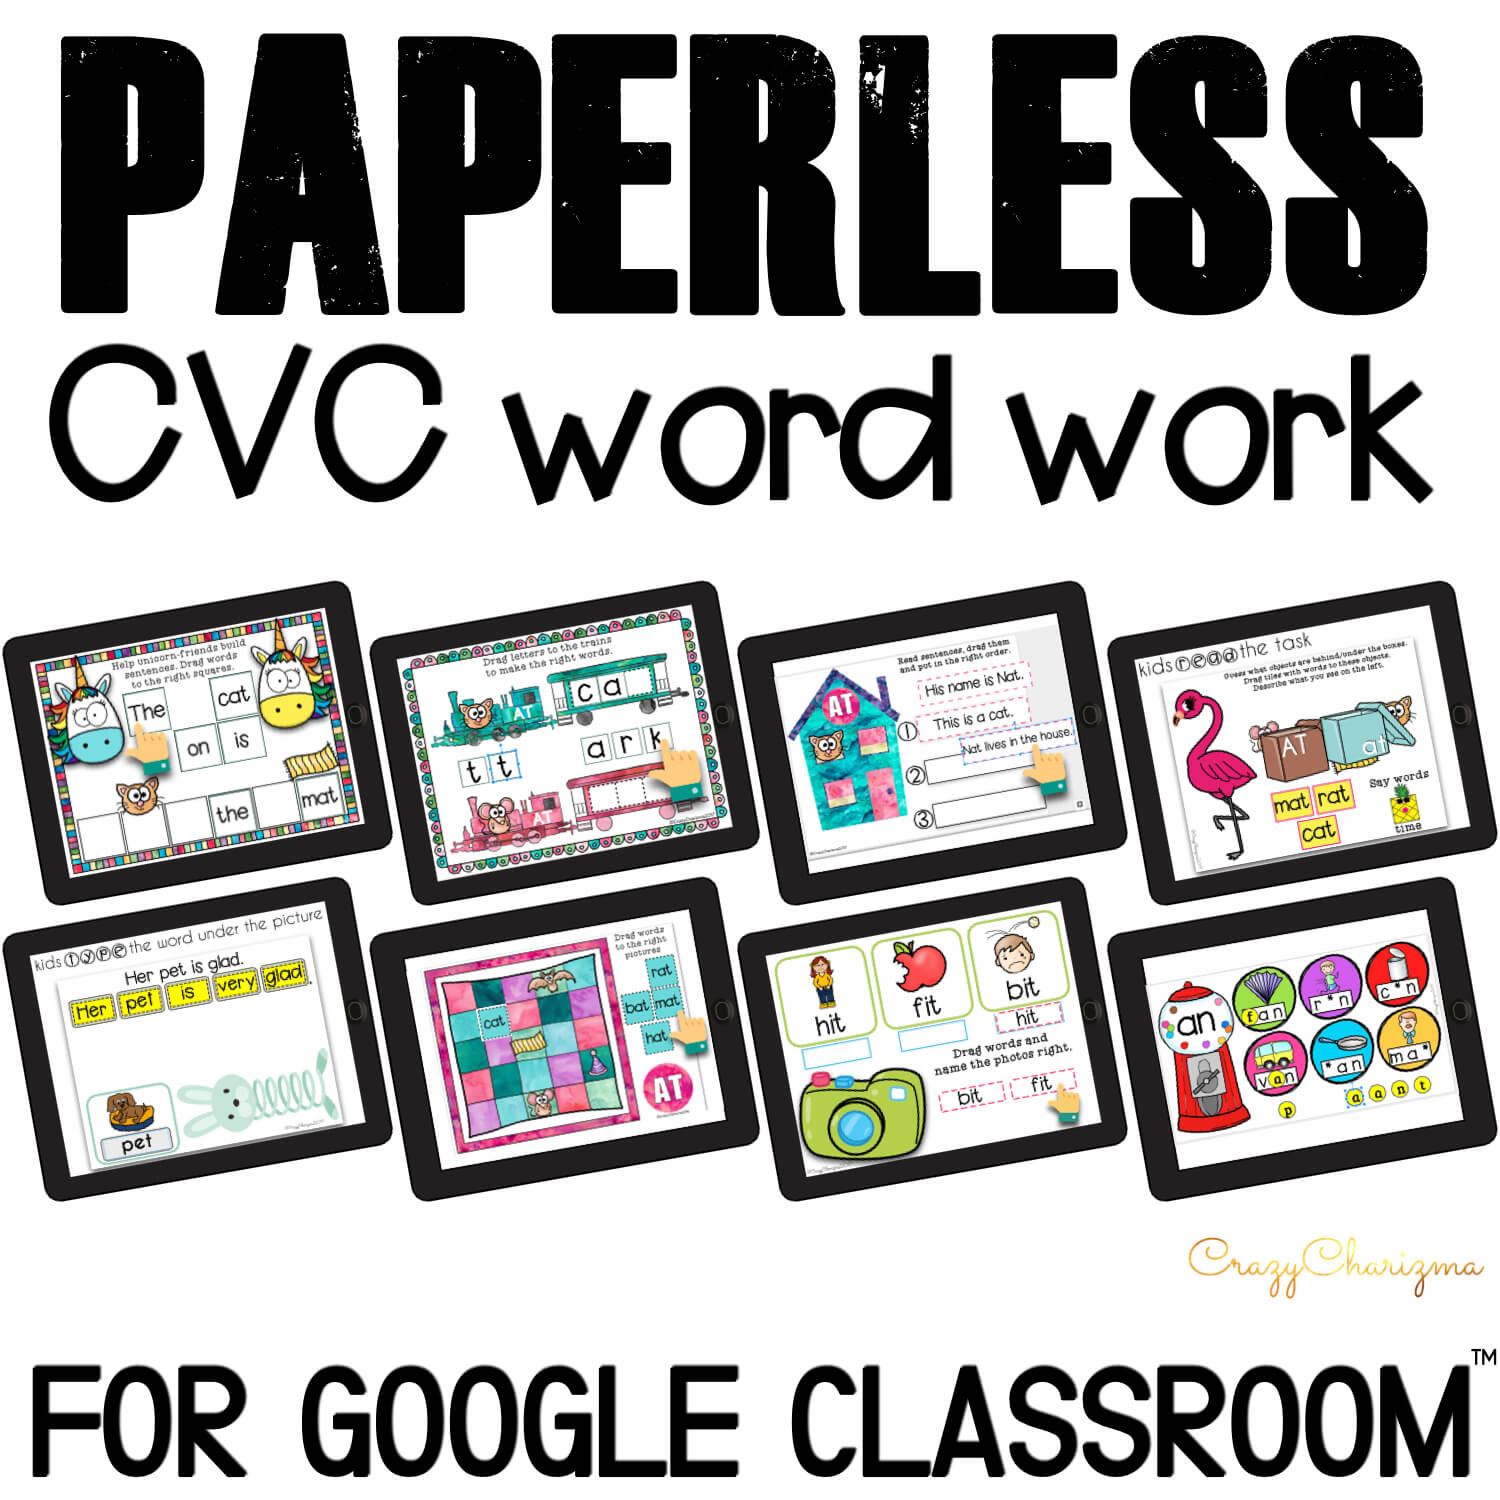 Looking for NO PREP paperless activities to practice CVC words? I've got you covered! Practice word work, words sentences, and read fluency passages. Google Classroom for kindergarten can be fun!